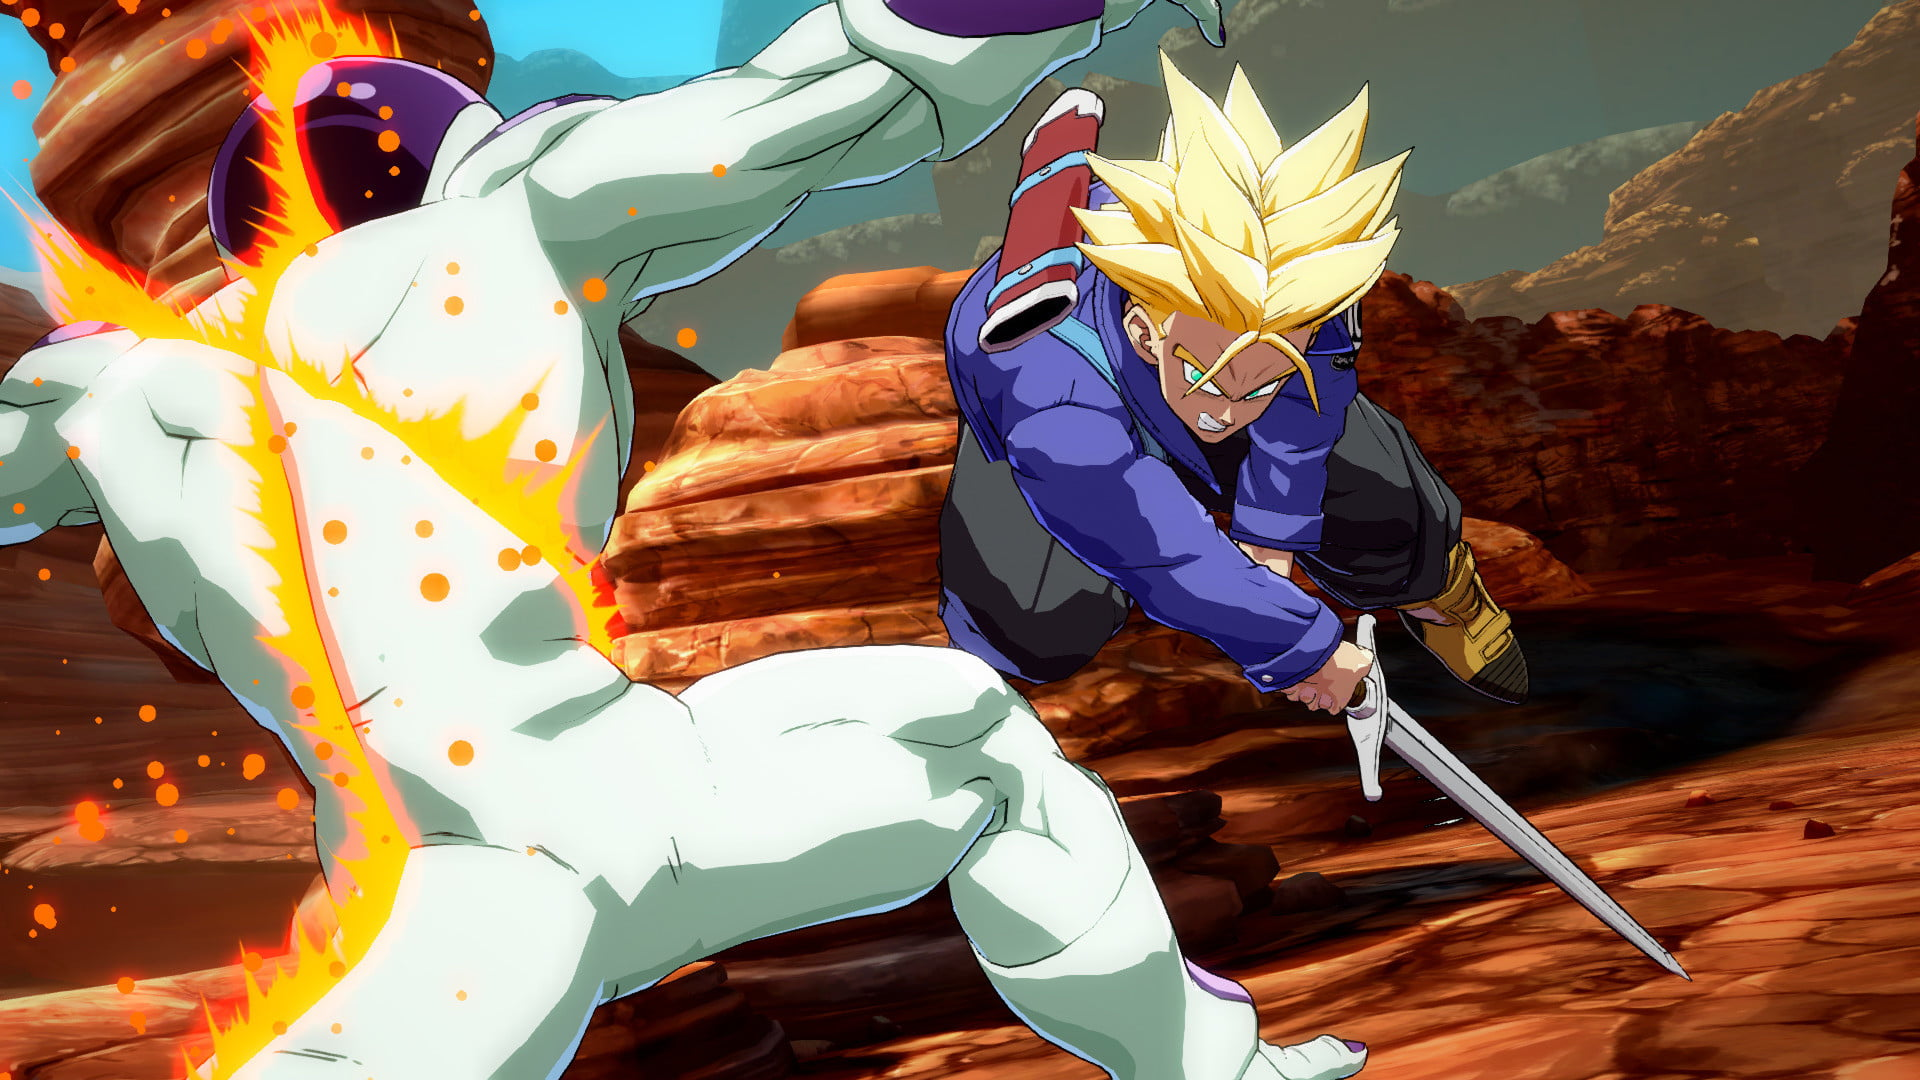 How to Find an Online Match Fast In 'Dragon Ball FighterZ